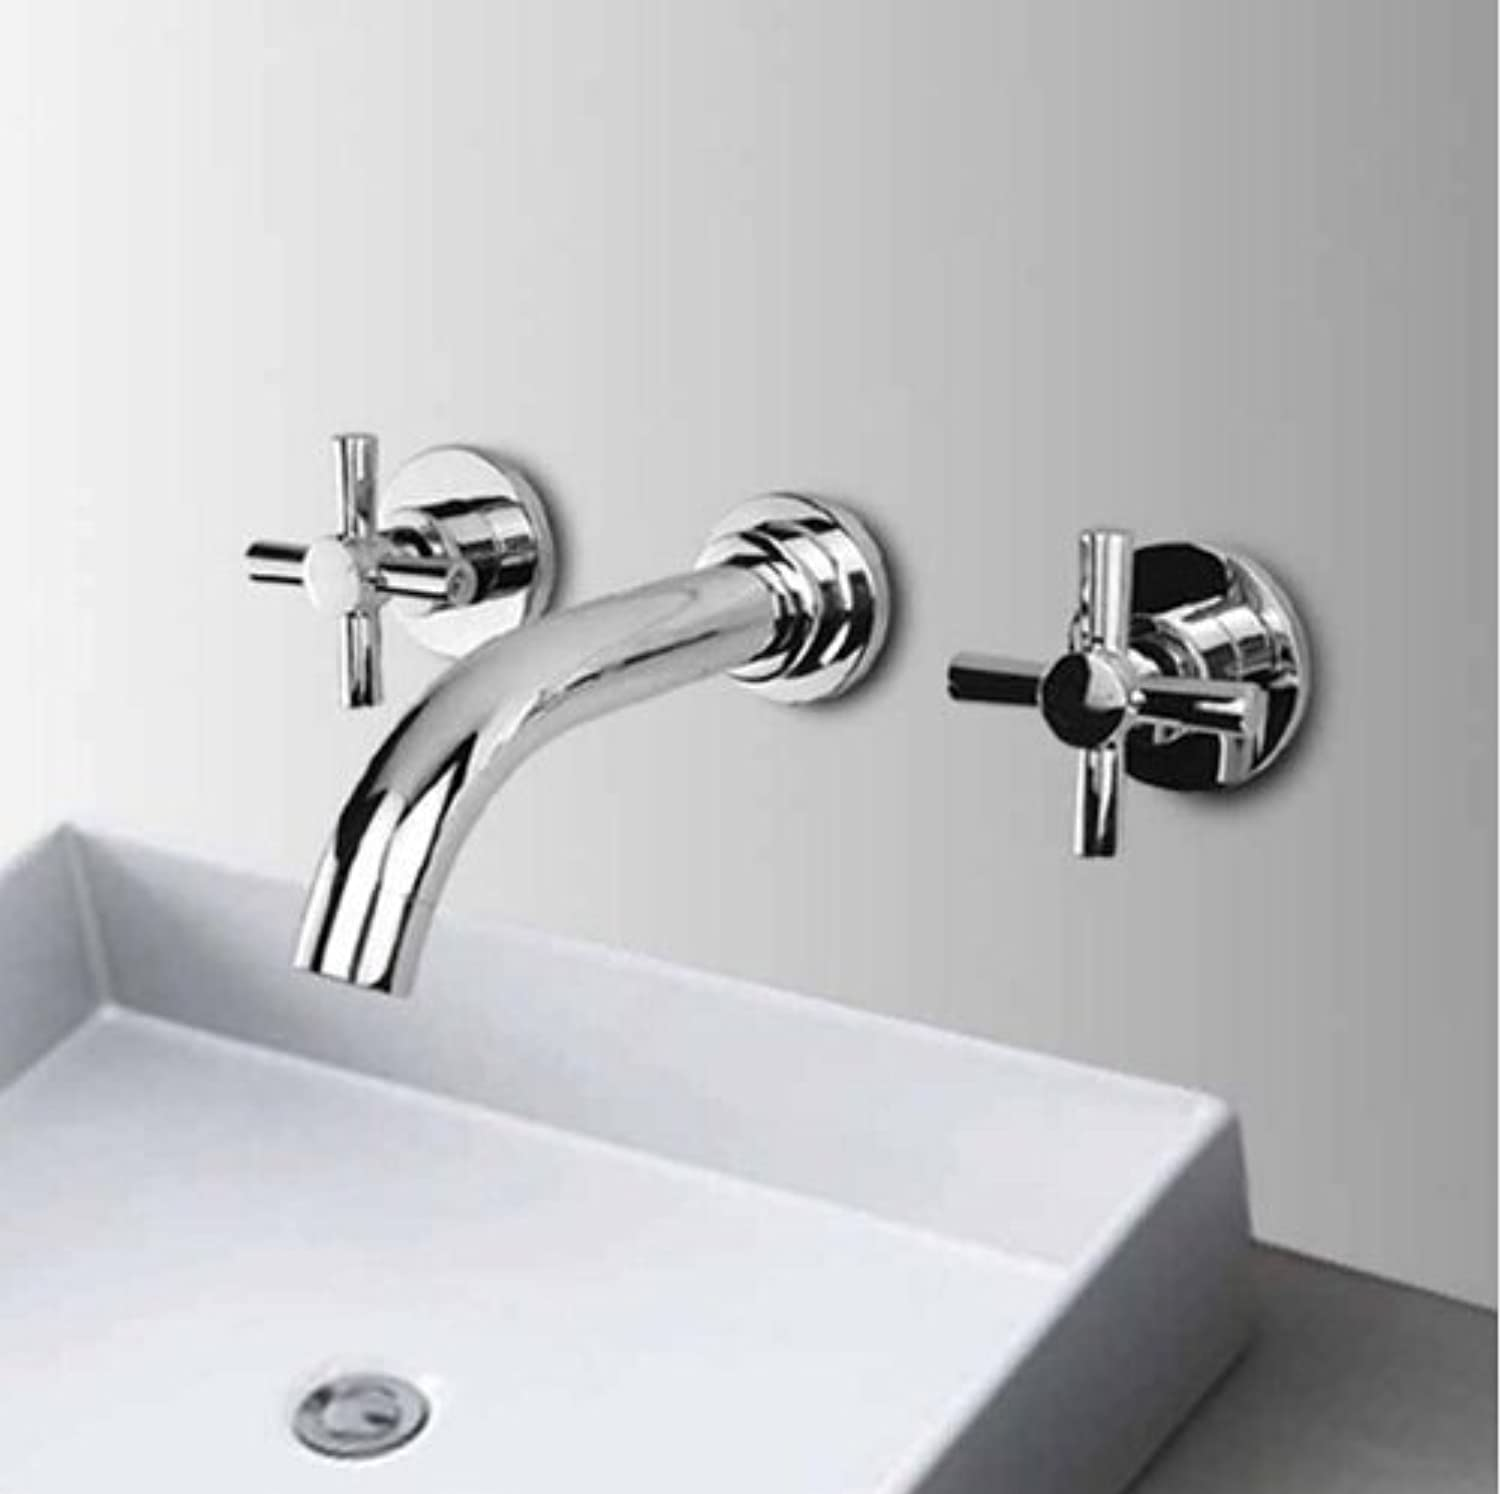 U-Enjoy Chrome Finished Brass Top Quality in-Wall Bathroom Sink Faucet Home Bathroom Kitchen Bathroom Sink Faucet (Free Shipping)